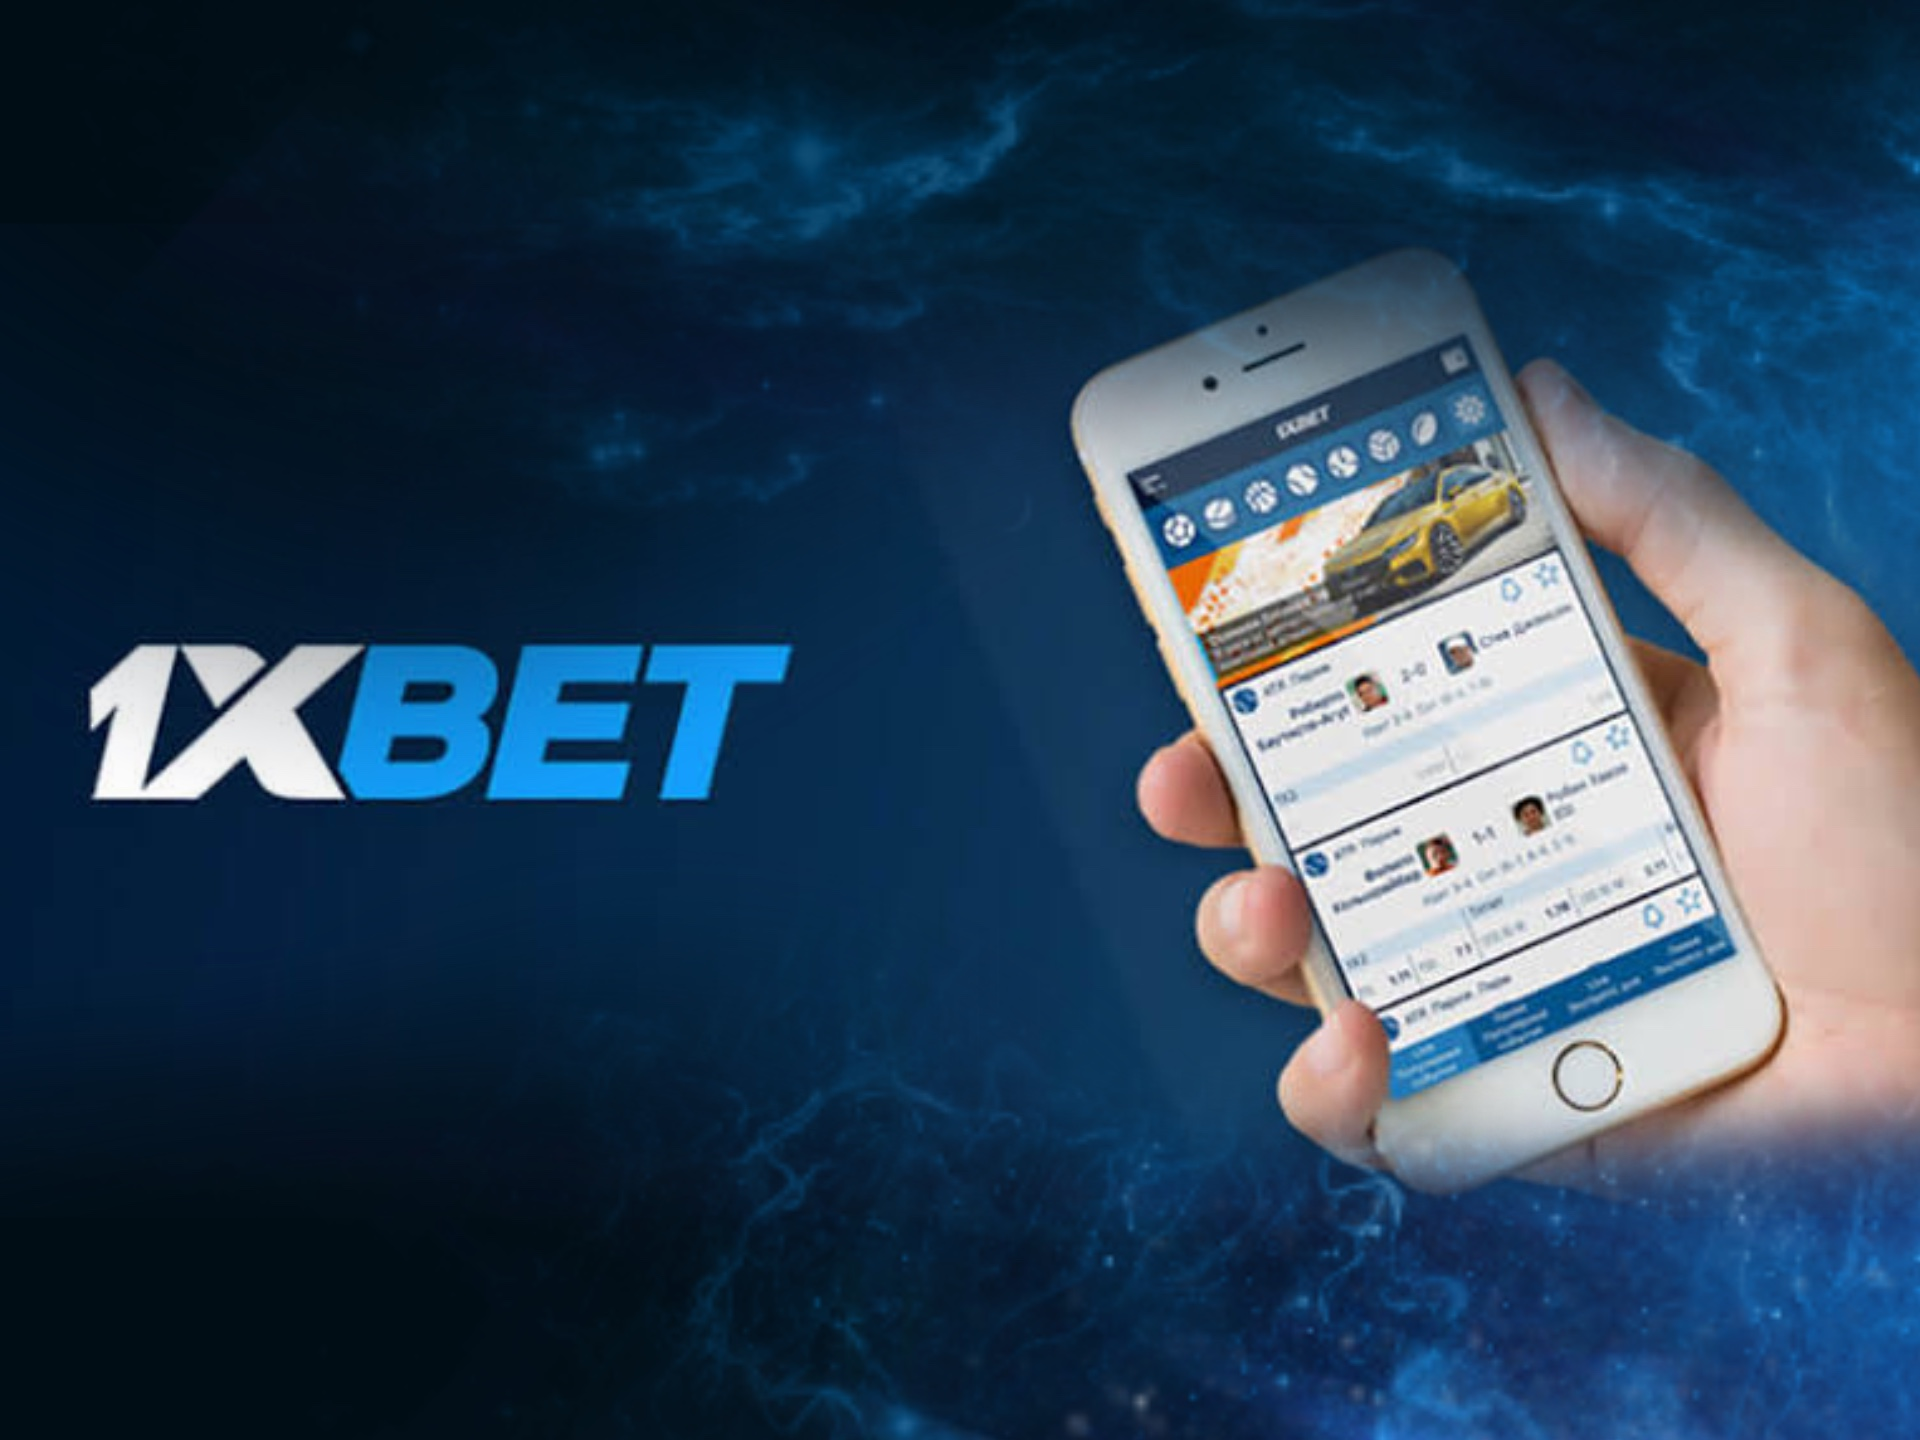 Download the 1zbet mobile app, install it and start betting on cricket.